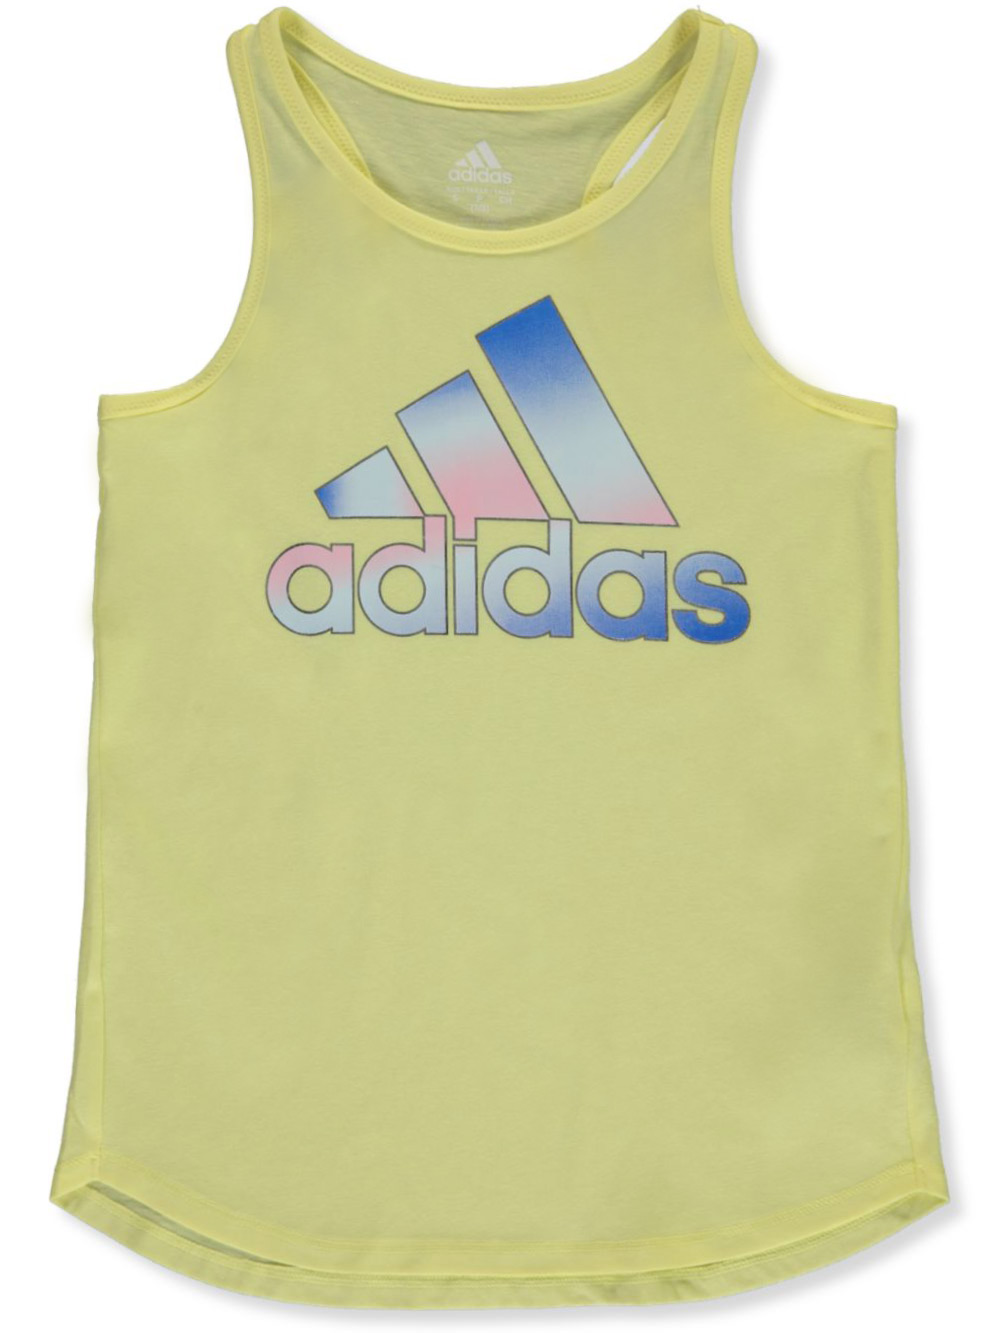 Size 14 Tank Tops for Girls